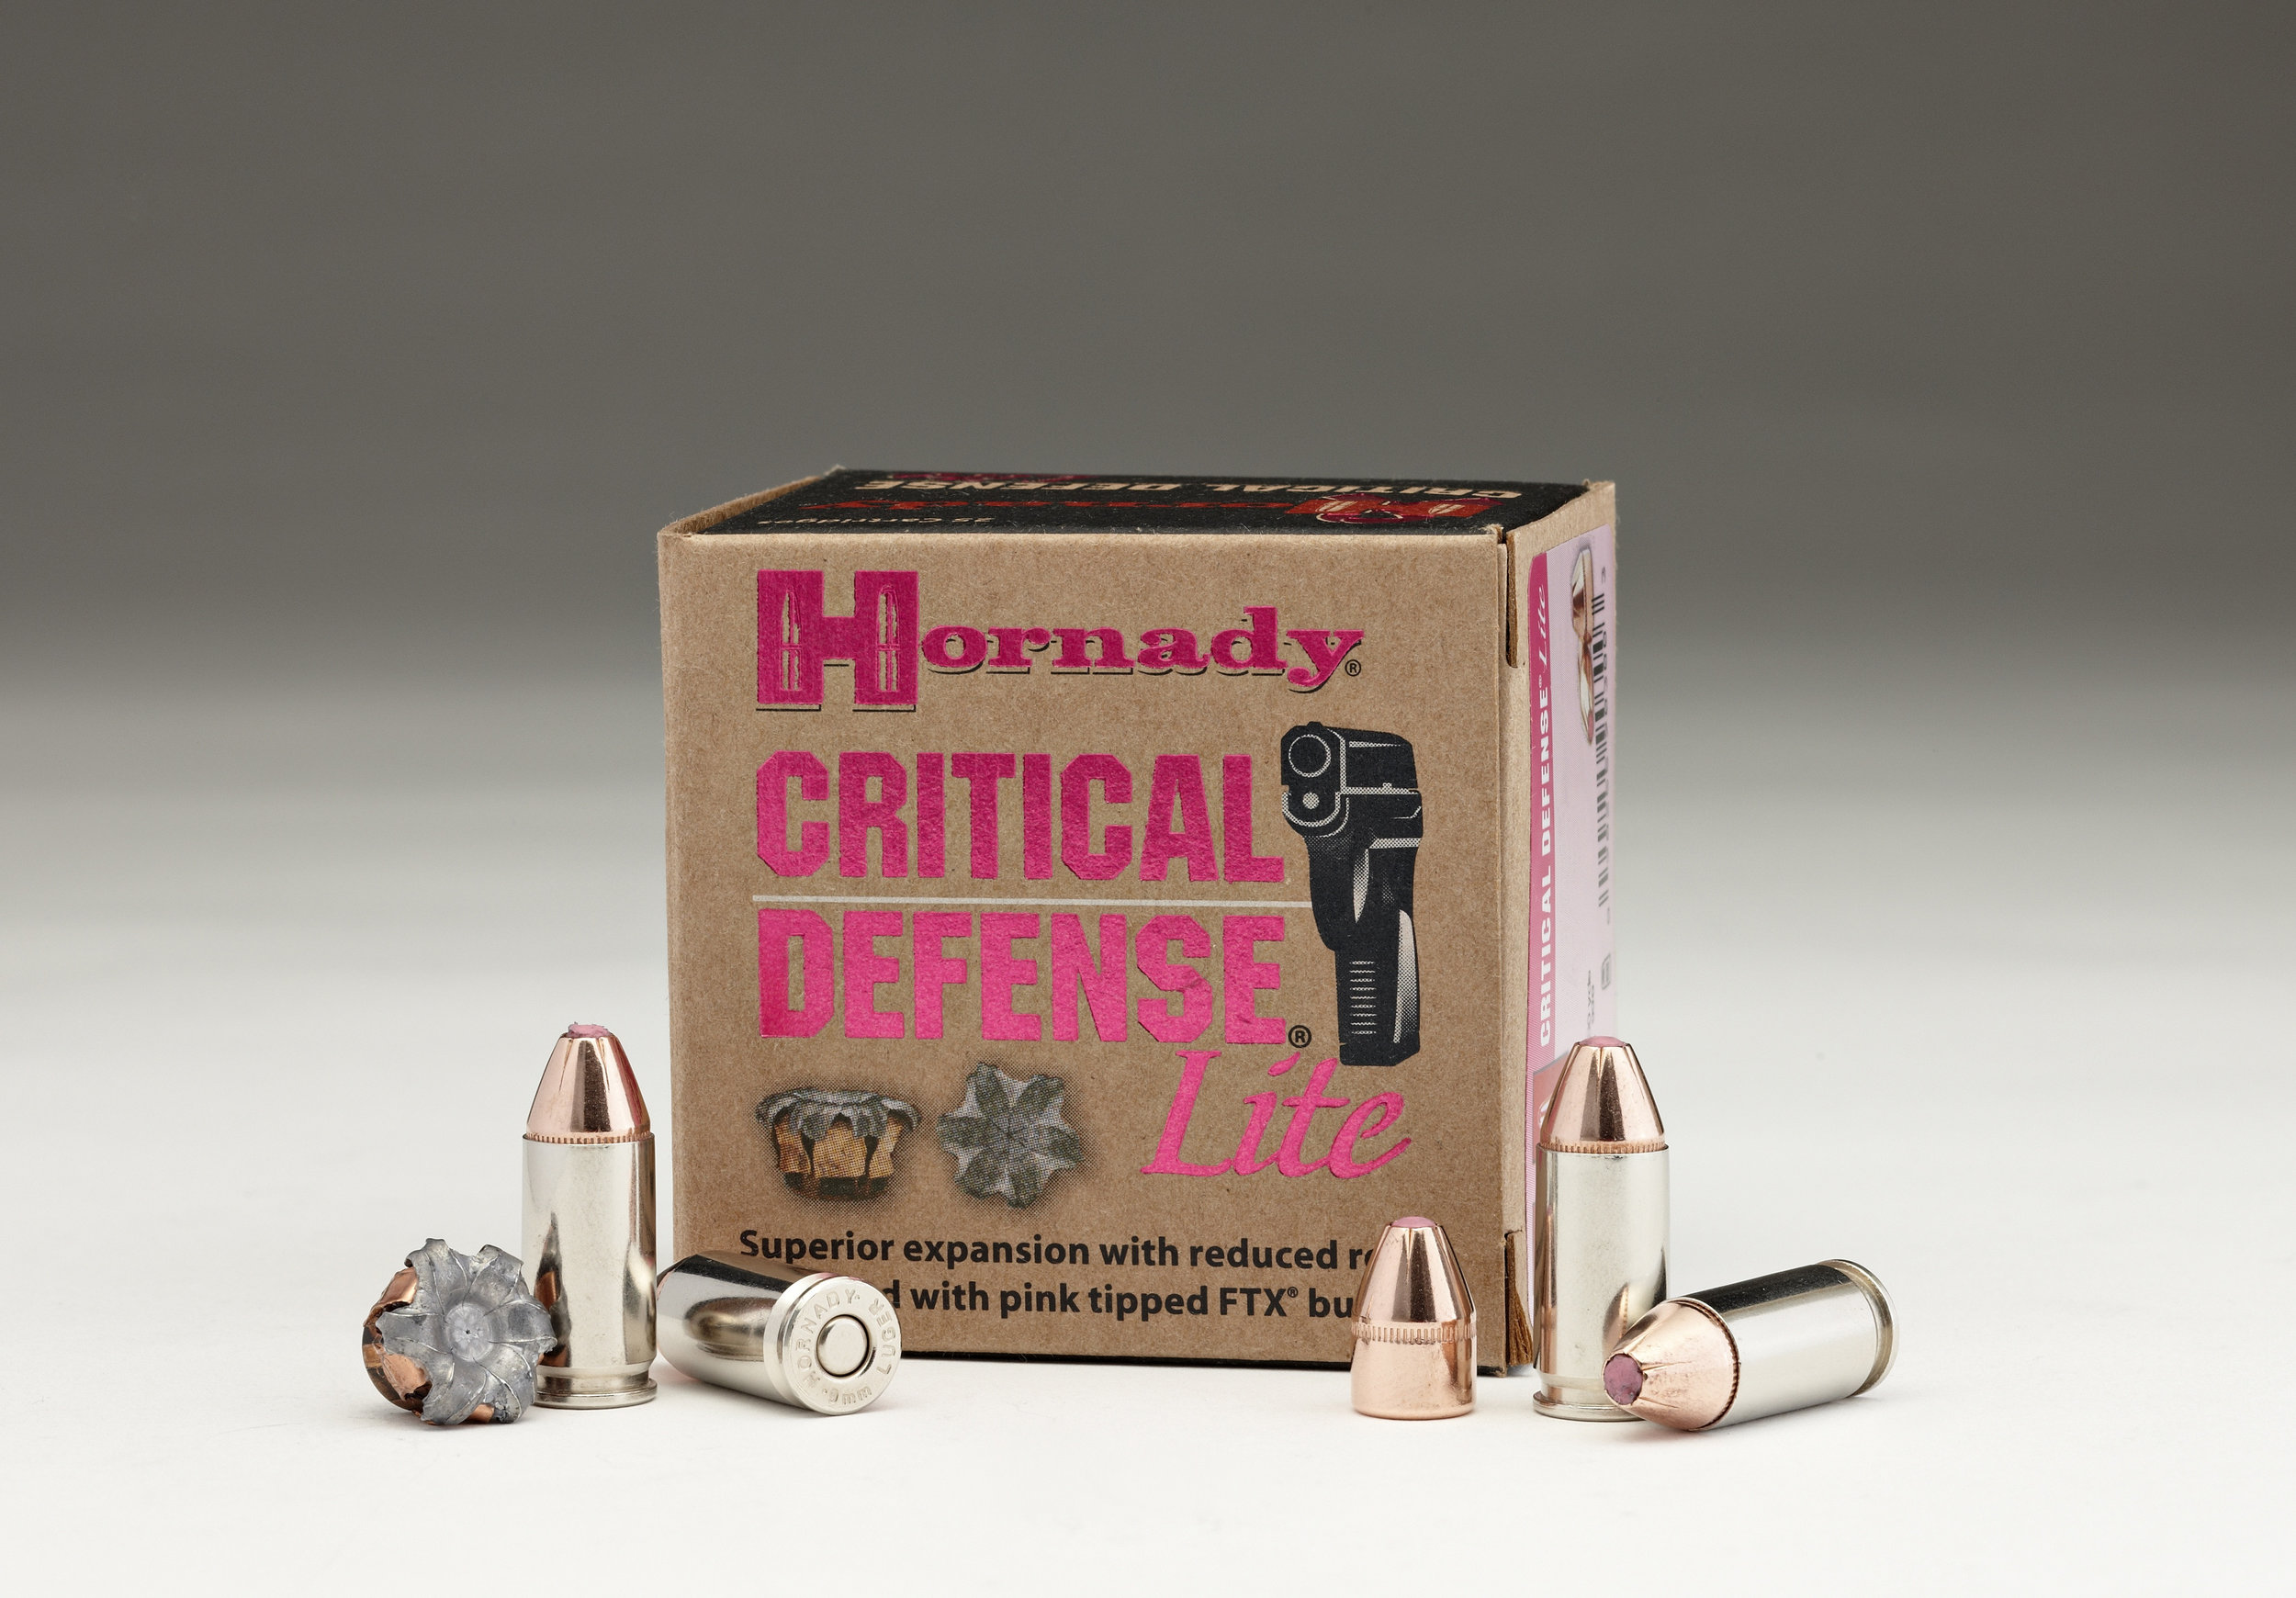 Grace Cancer Foundation is grateful to have the support of Hornady as our Corporate Sponsor! Funds raised through the sales of Hornady's Critical Defense bullet are given to Grace each year, at $.50 from every box sold. Thank you, Hornady! -